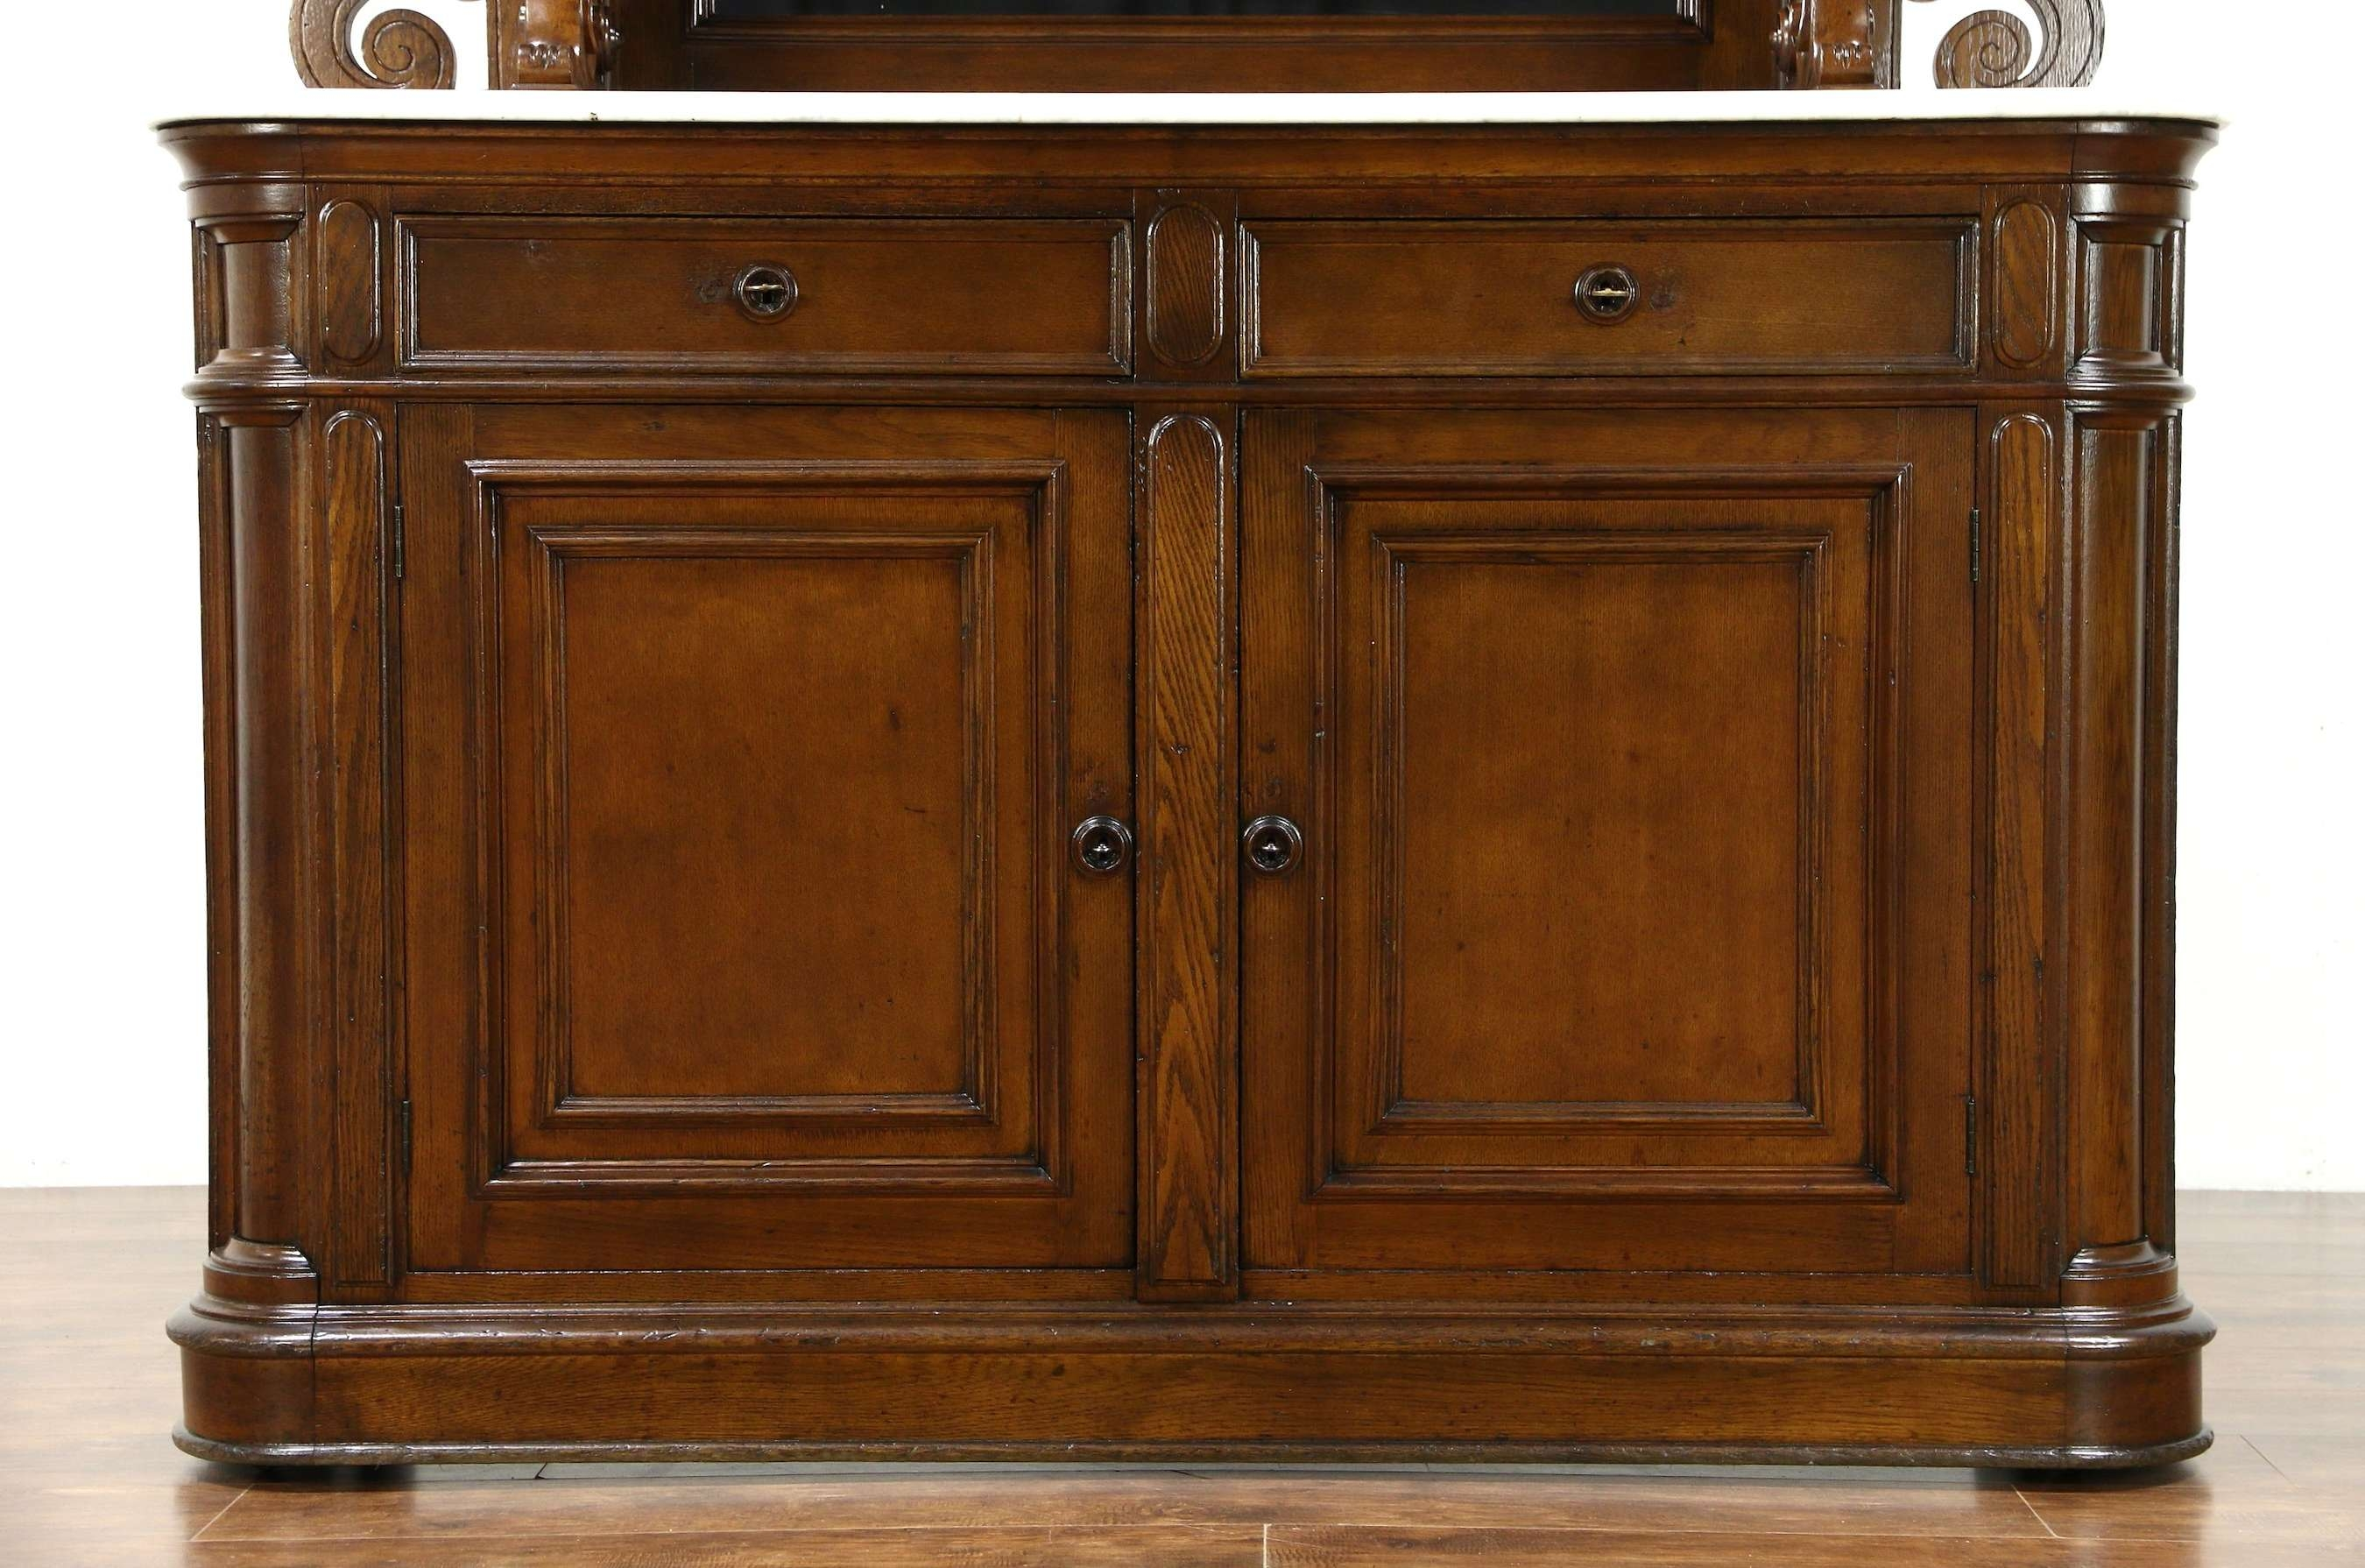 Victorian Grape Carved Oak Antique 1870 Sideboard, Server Or With Sideboards With Marble Tops (View 8 of 20)